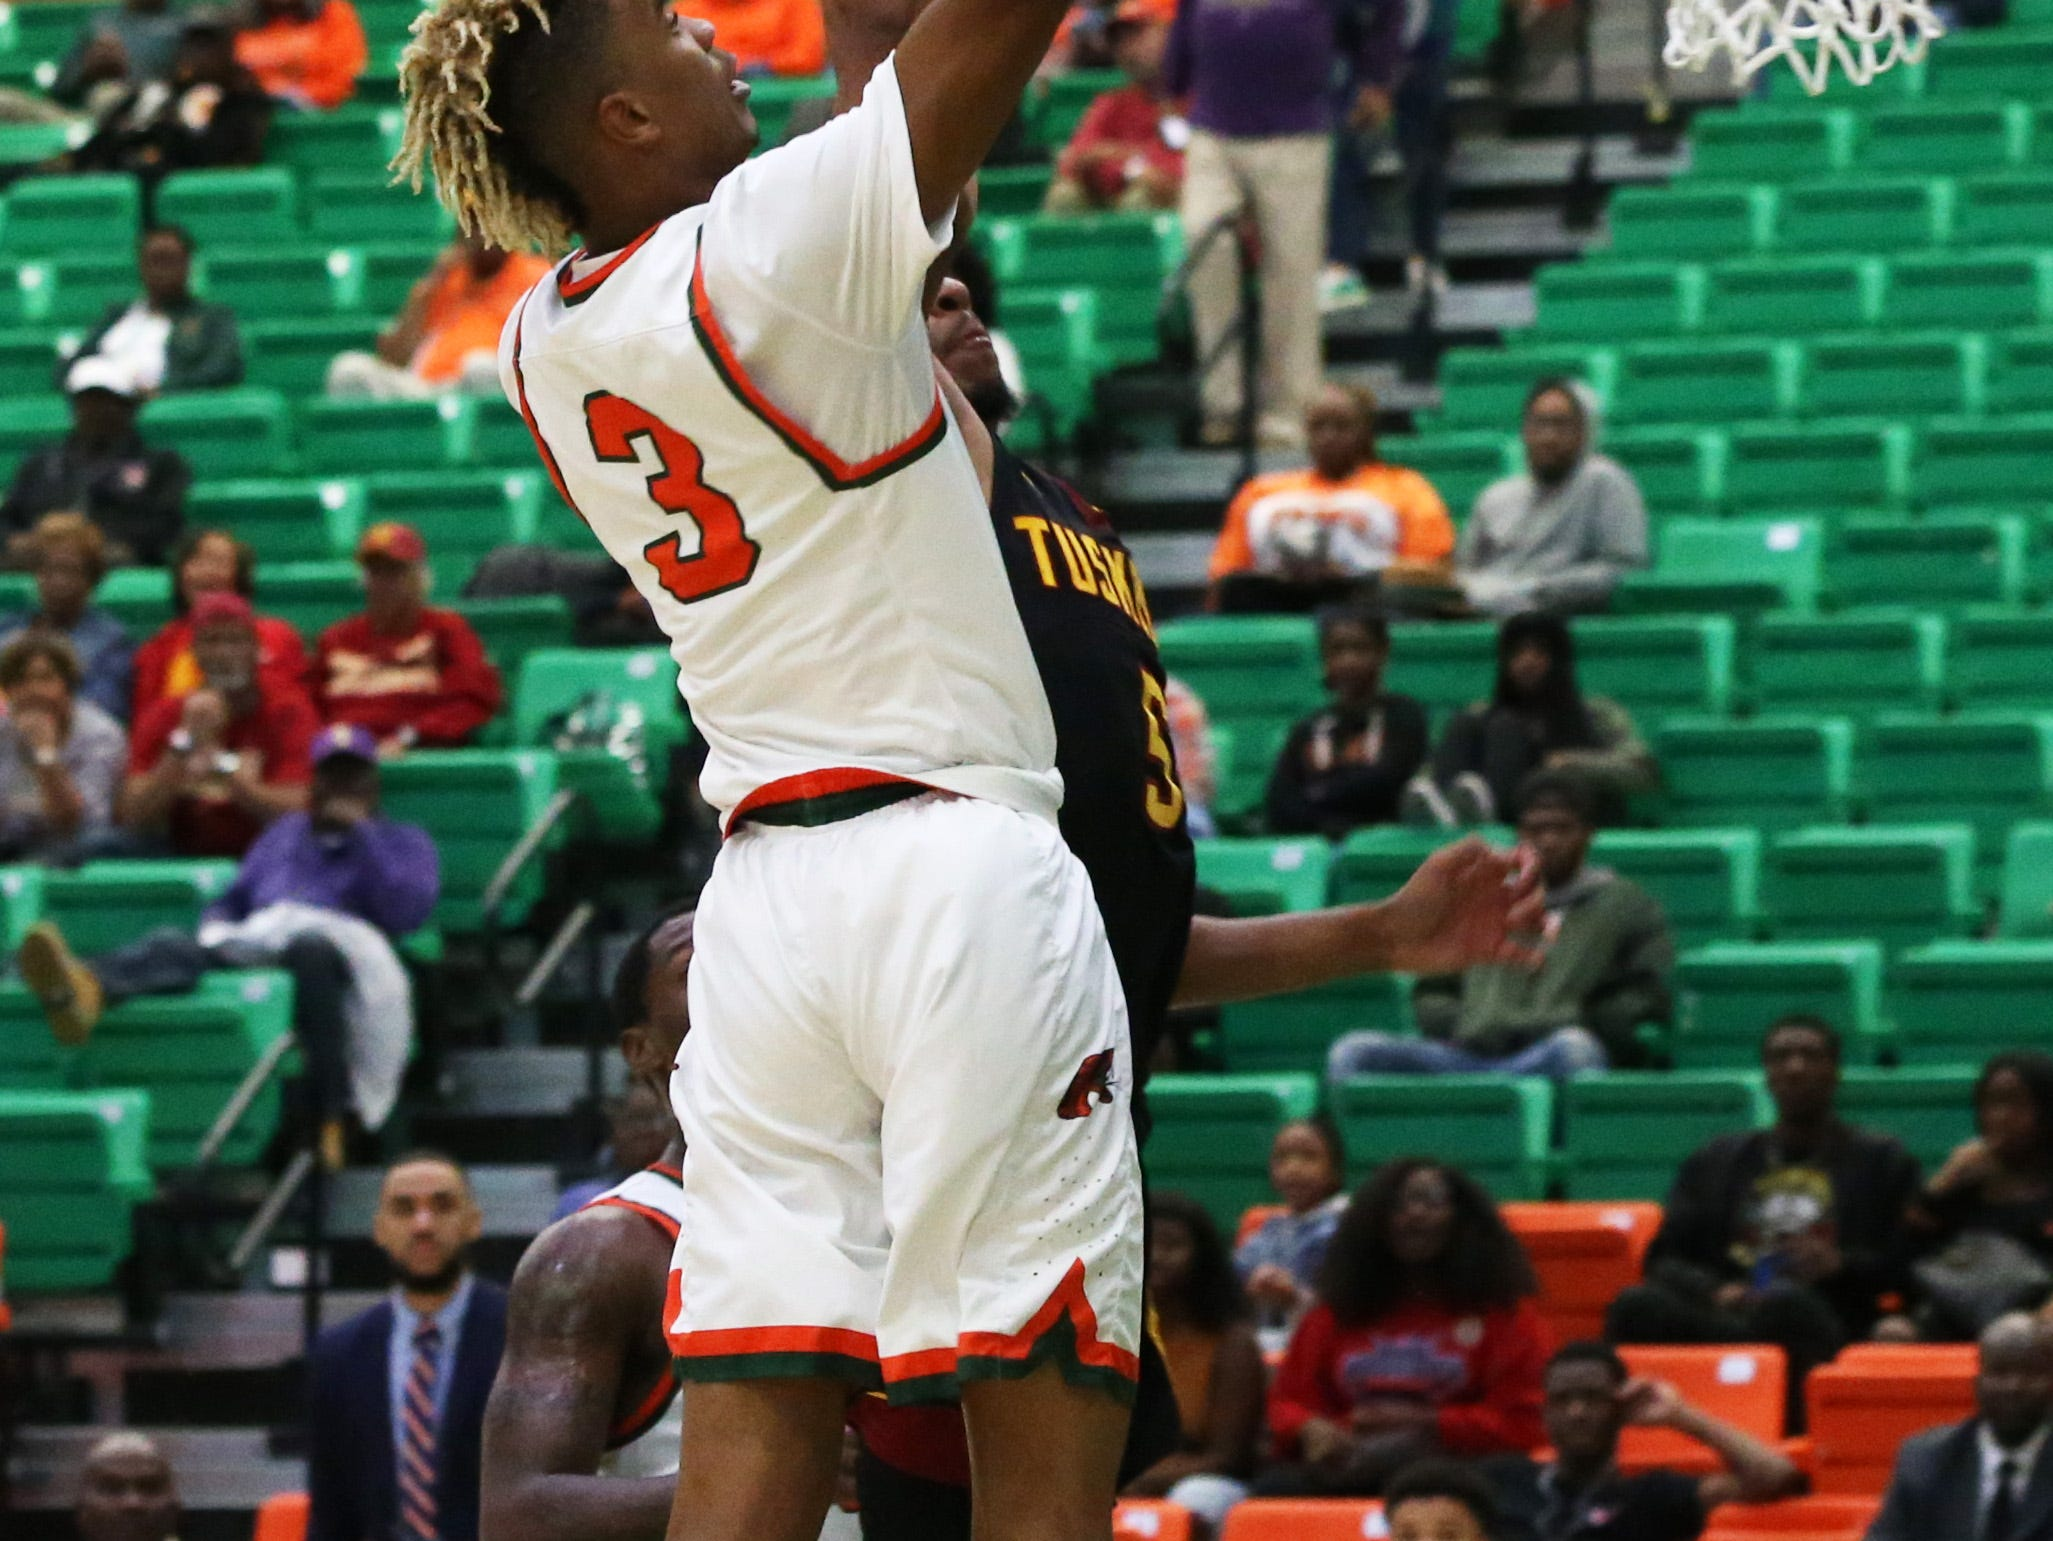 Florida A&M Rattlers guard MJ Randolph (3) goes for a layup as the FAMU Rattlers take on the Tuskegee Golden Tigers in their first home game of the season in the Lawson Center, Saturday, Nov. 10, 2018.